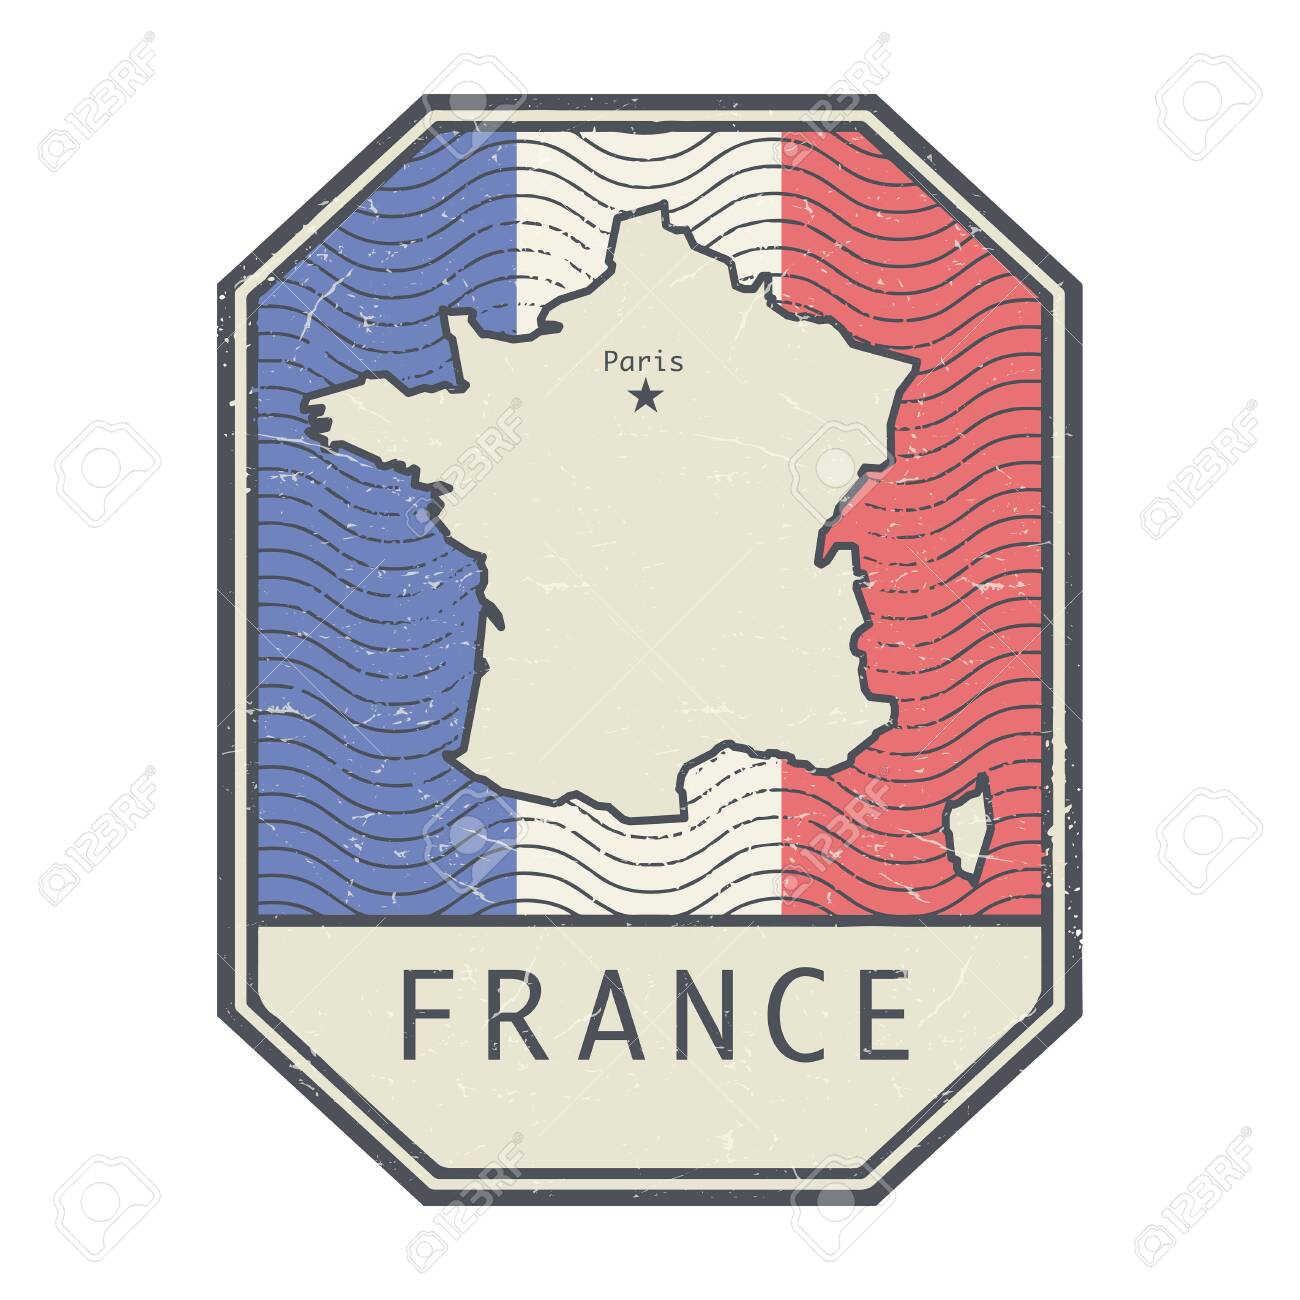 Grunge rubber stamp with the name and map of France, vector illustration - 154260821